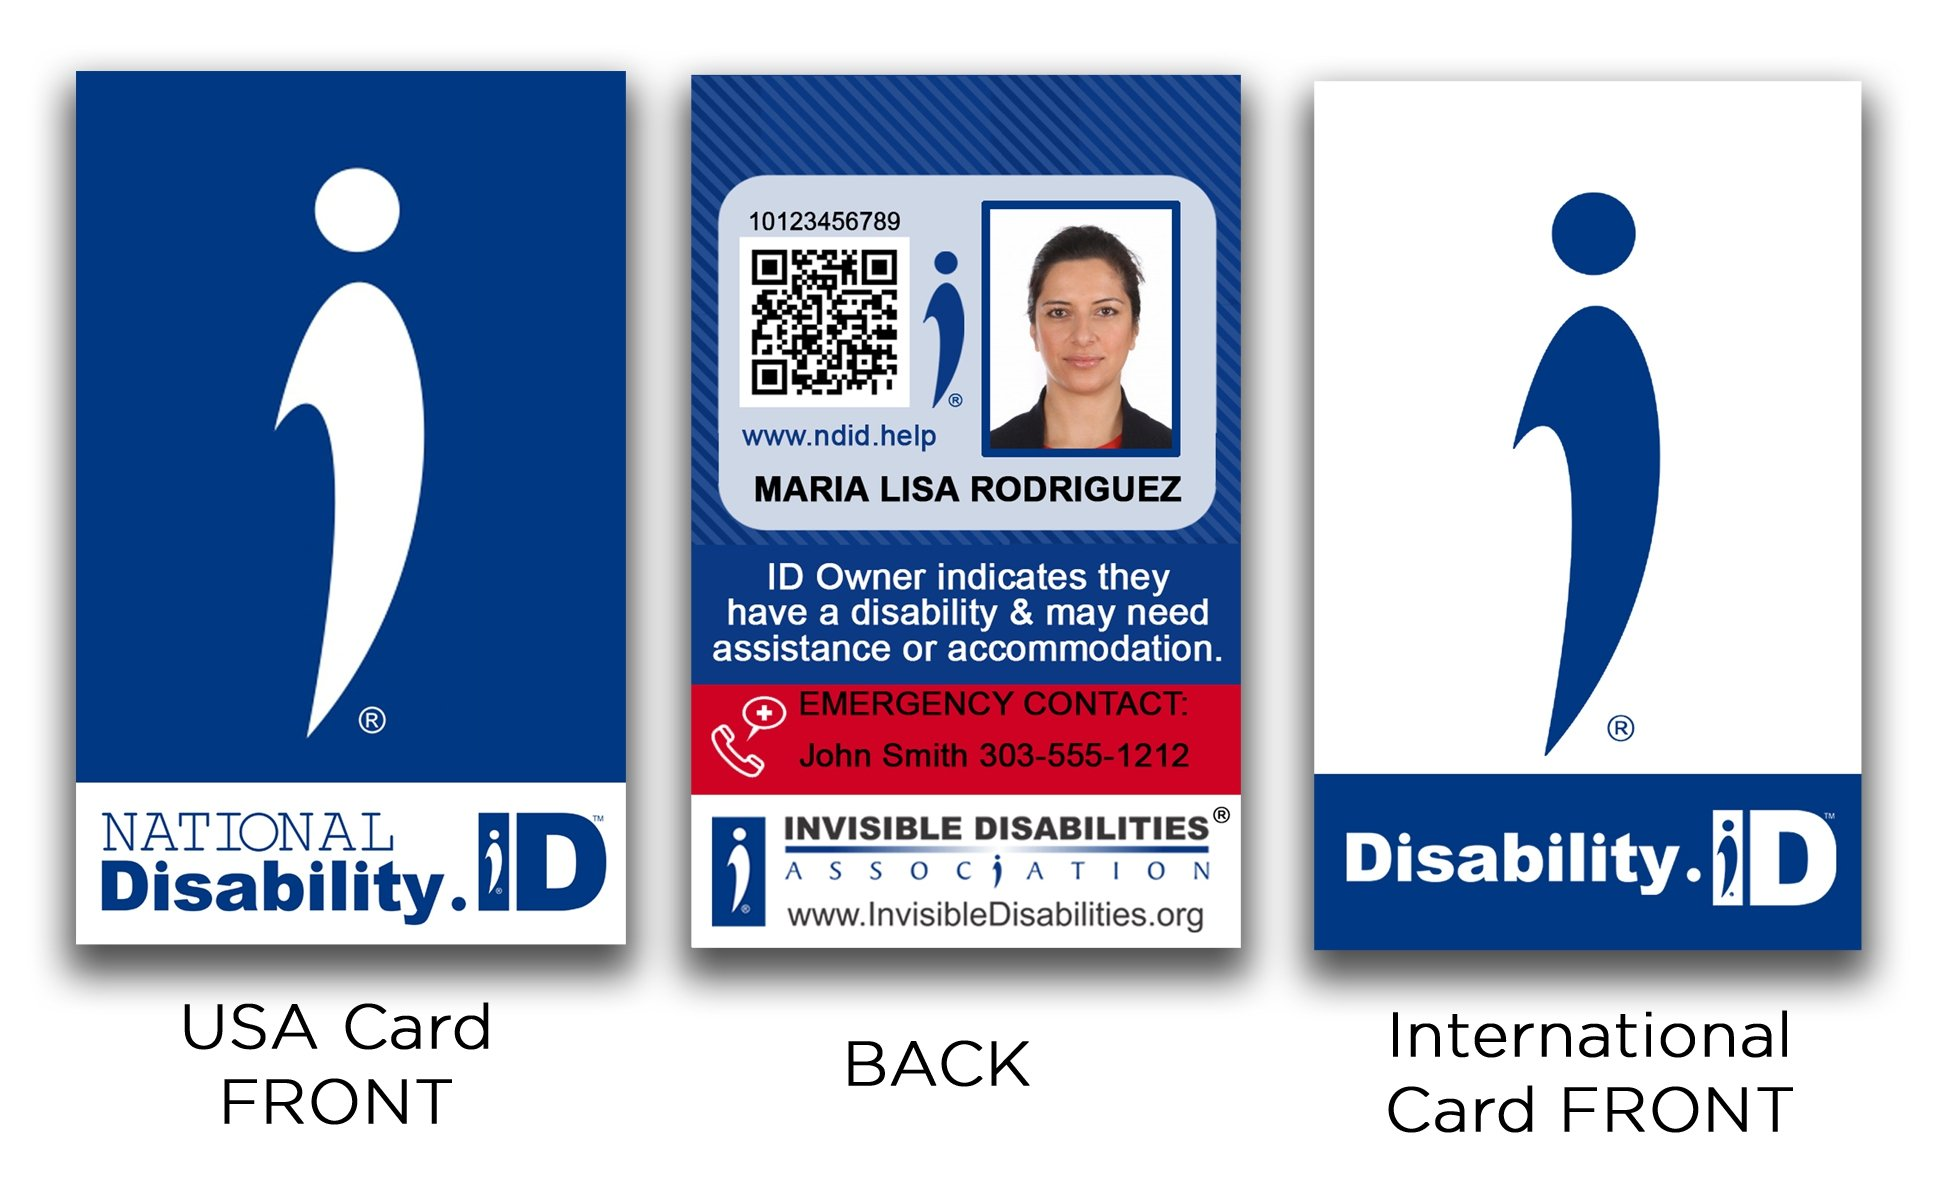 National Disability ID Card and International Disability ID Card